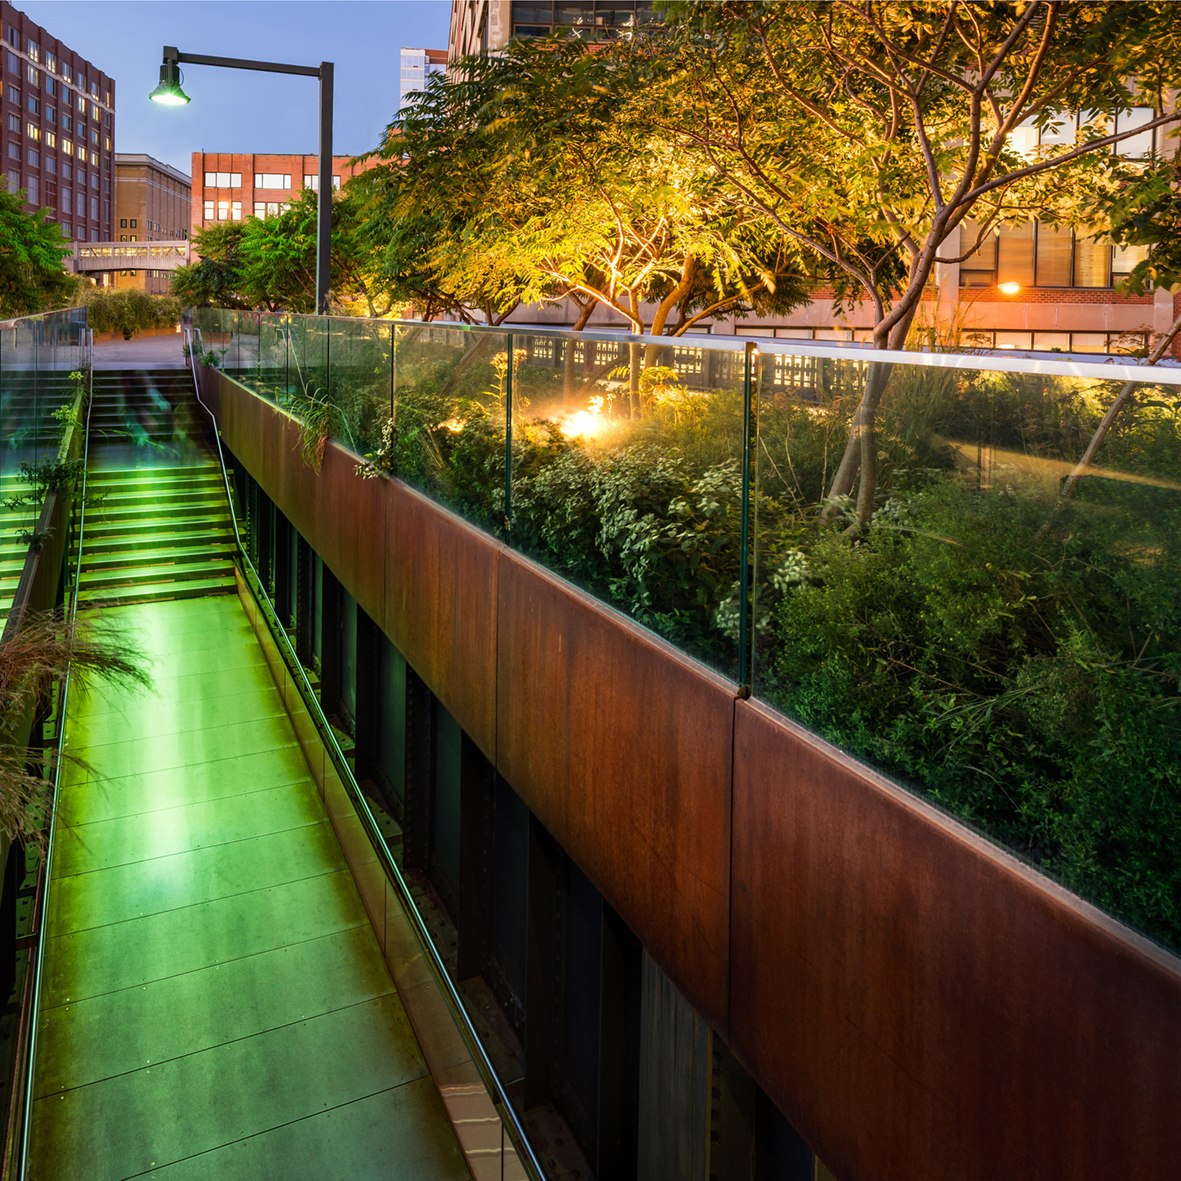 The High Line promenade illuminated at twilight in the West Vill